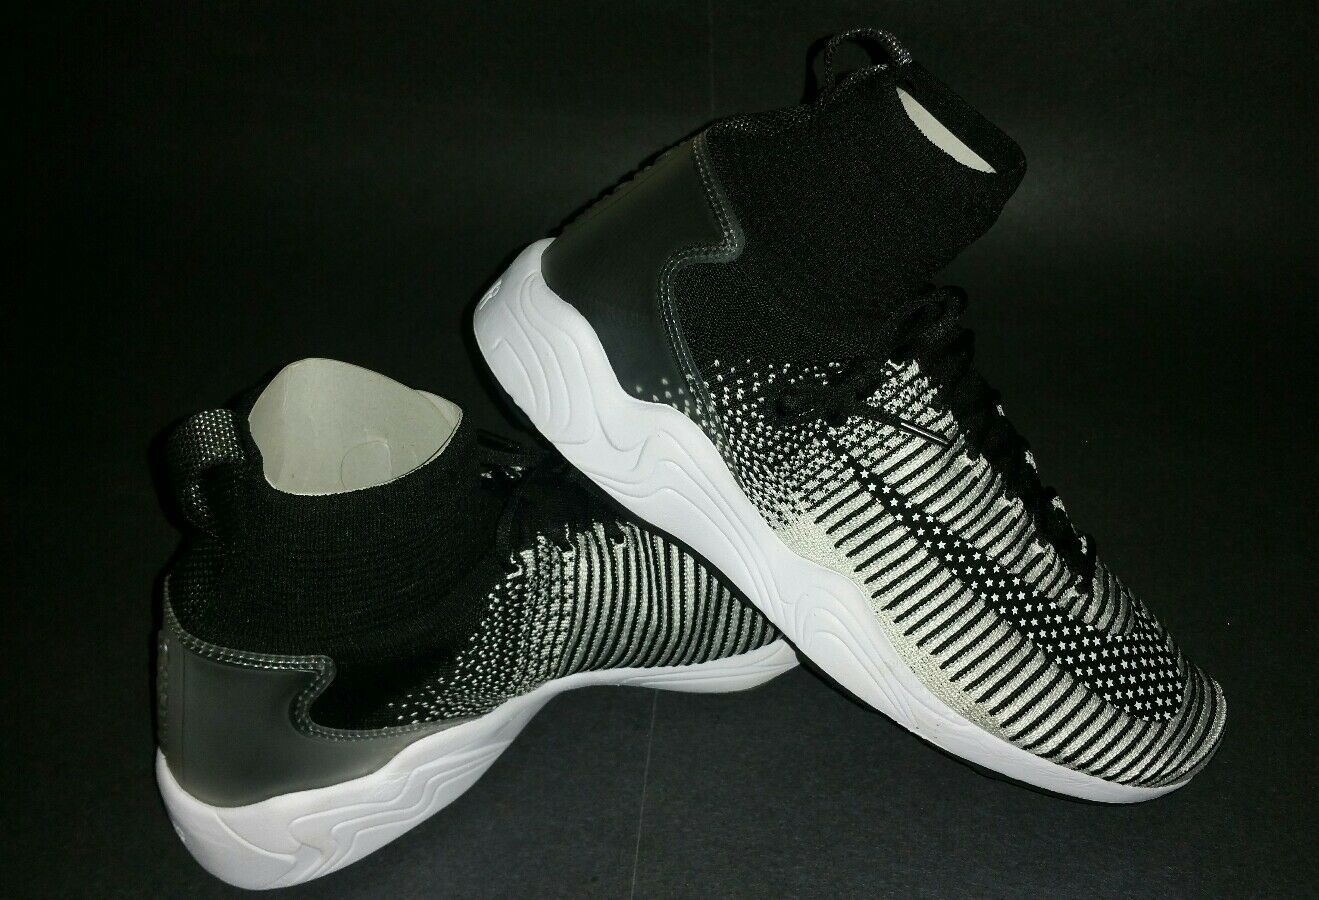 Nike Zoom Mercurial XI FK FC, Black/White, Comfortable Casual wild